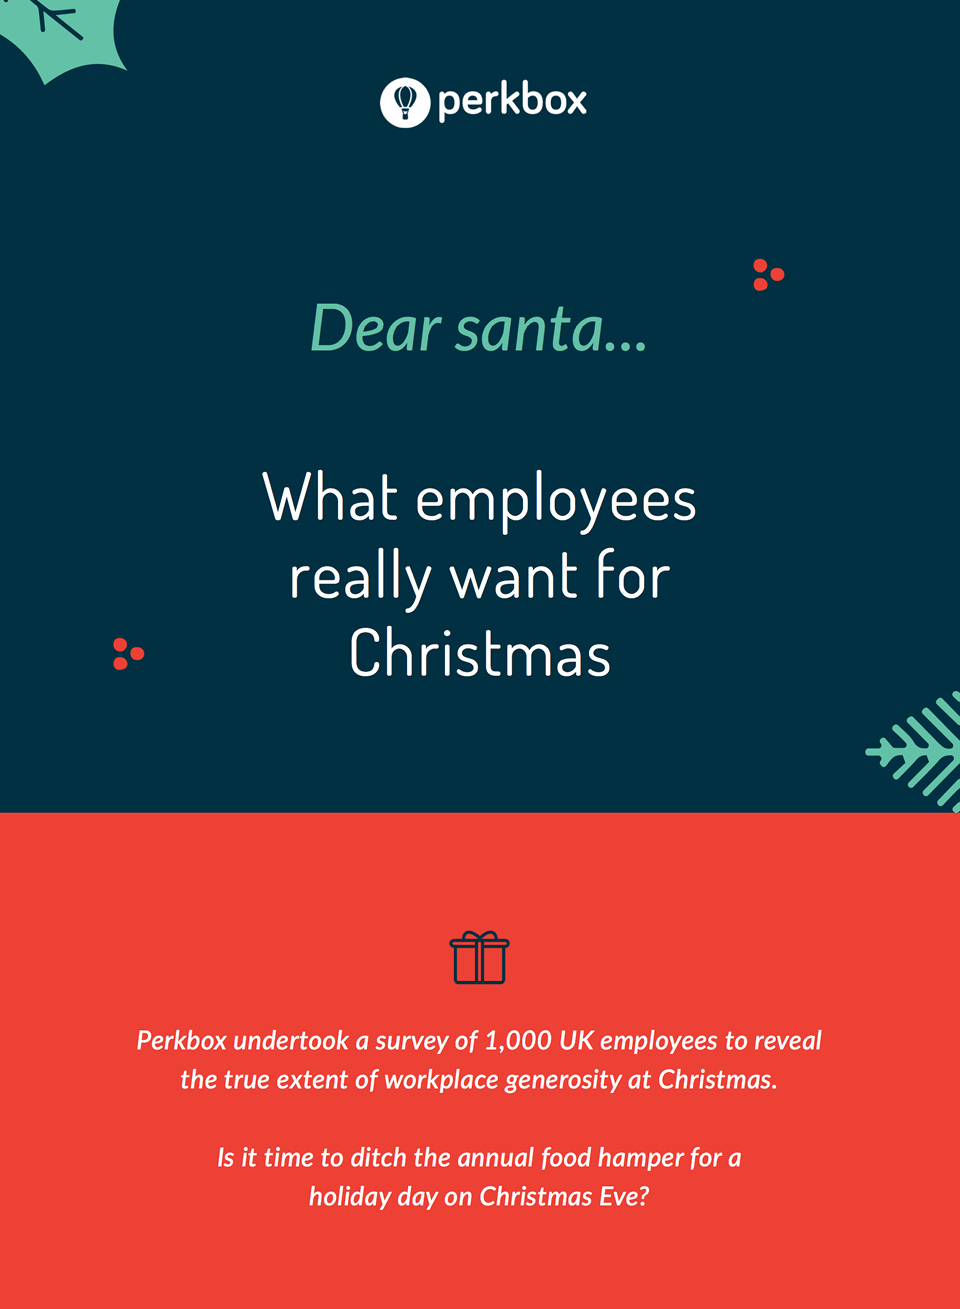 What employees really want for Christmas